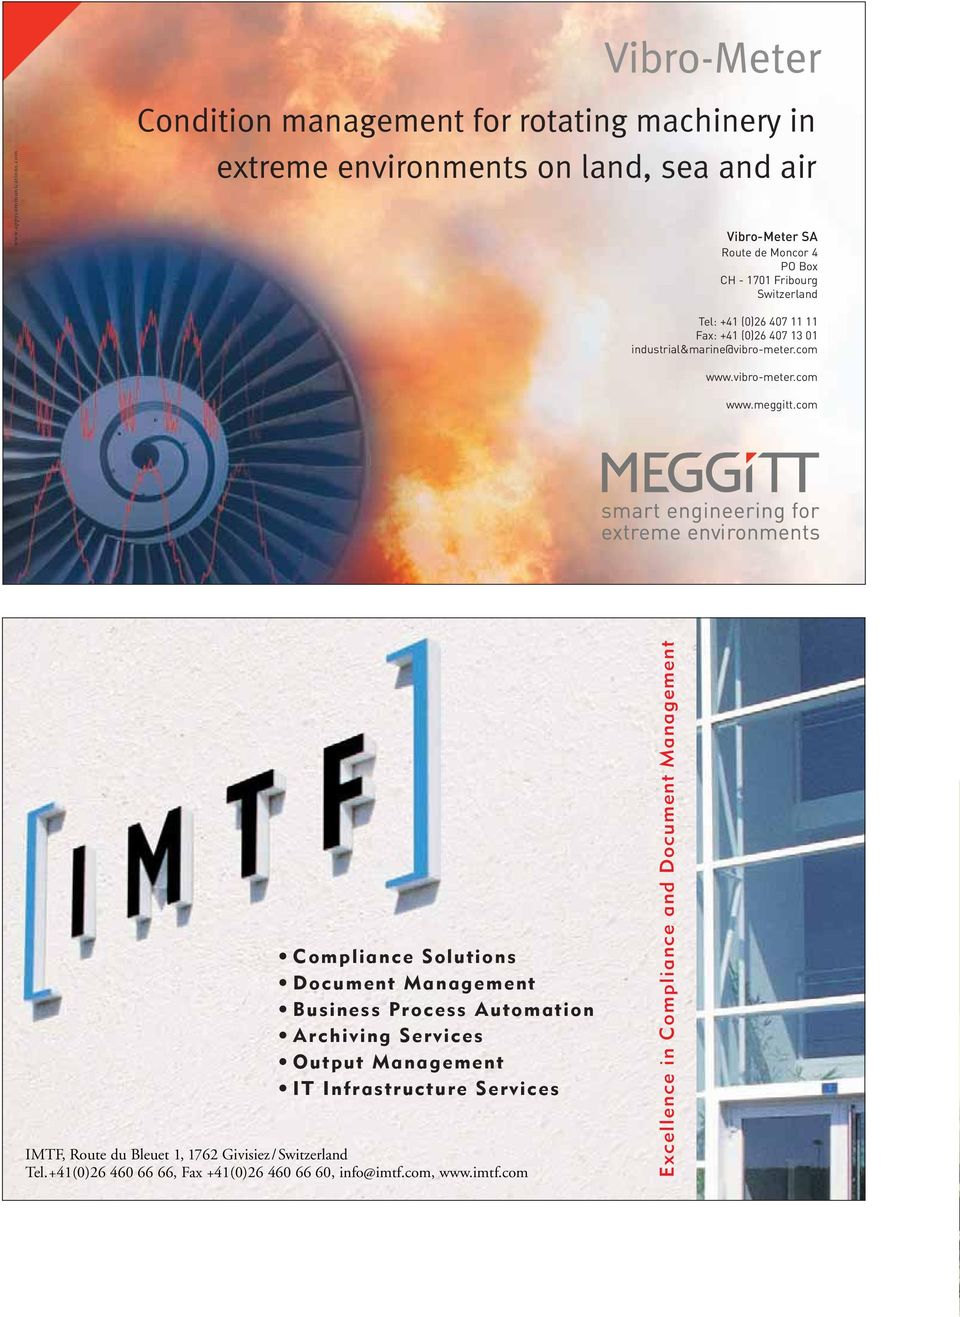 land, sea and air Vibro-Meter SA Route de Moncor 4 PO Box CH - 1701 Fribourg